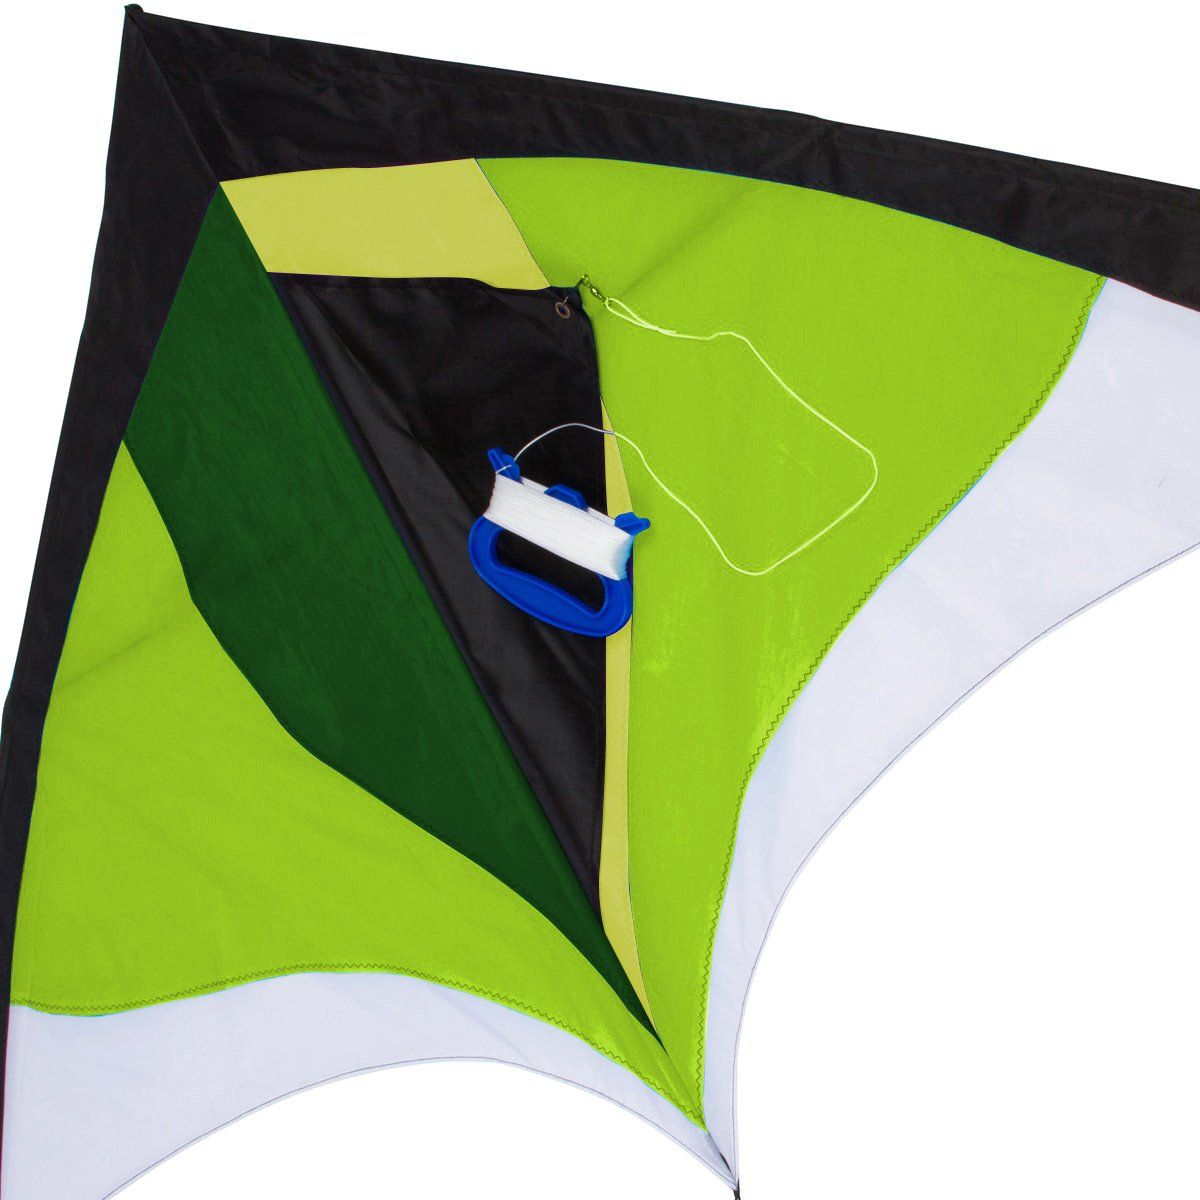 Best delta kite easy fly for kids and